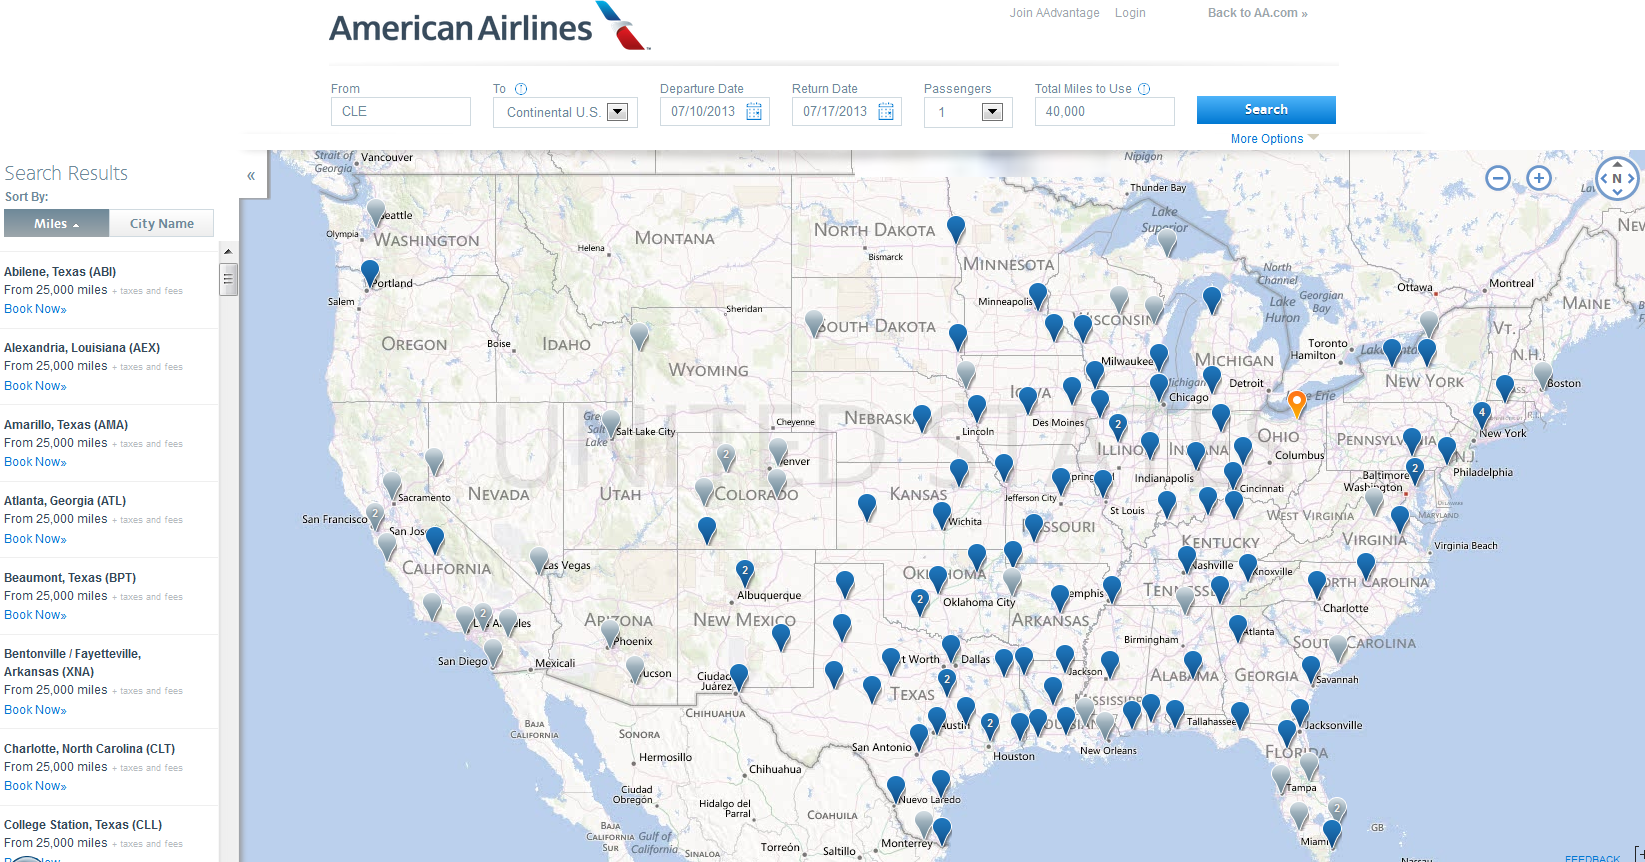 American Airlines Adds New Award Map InACentscom - Us airways travel map